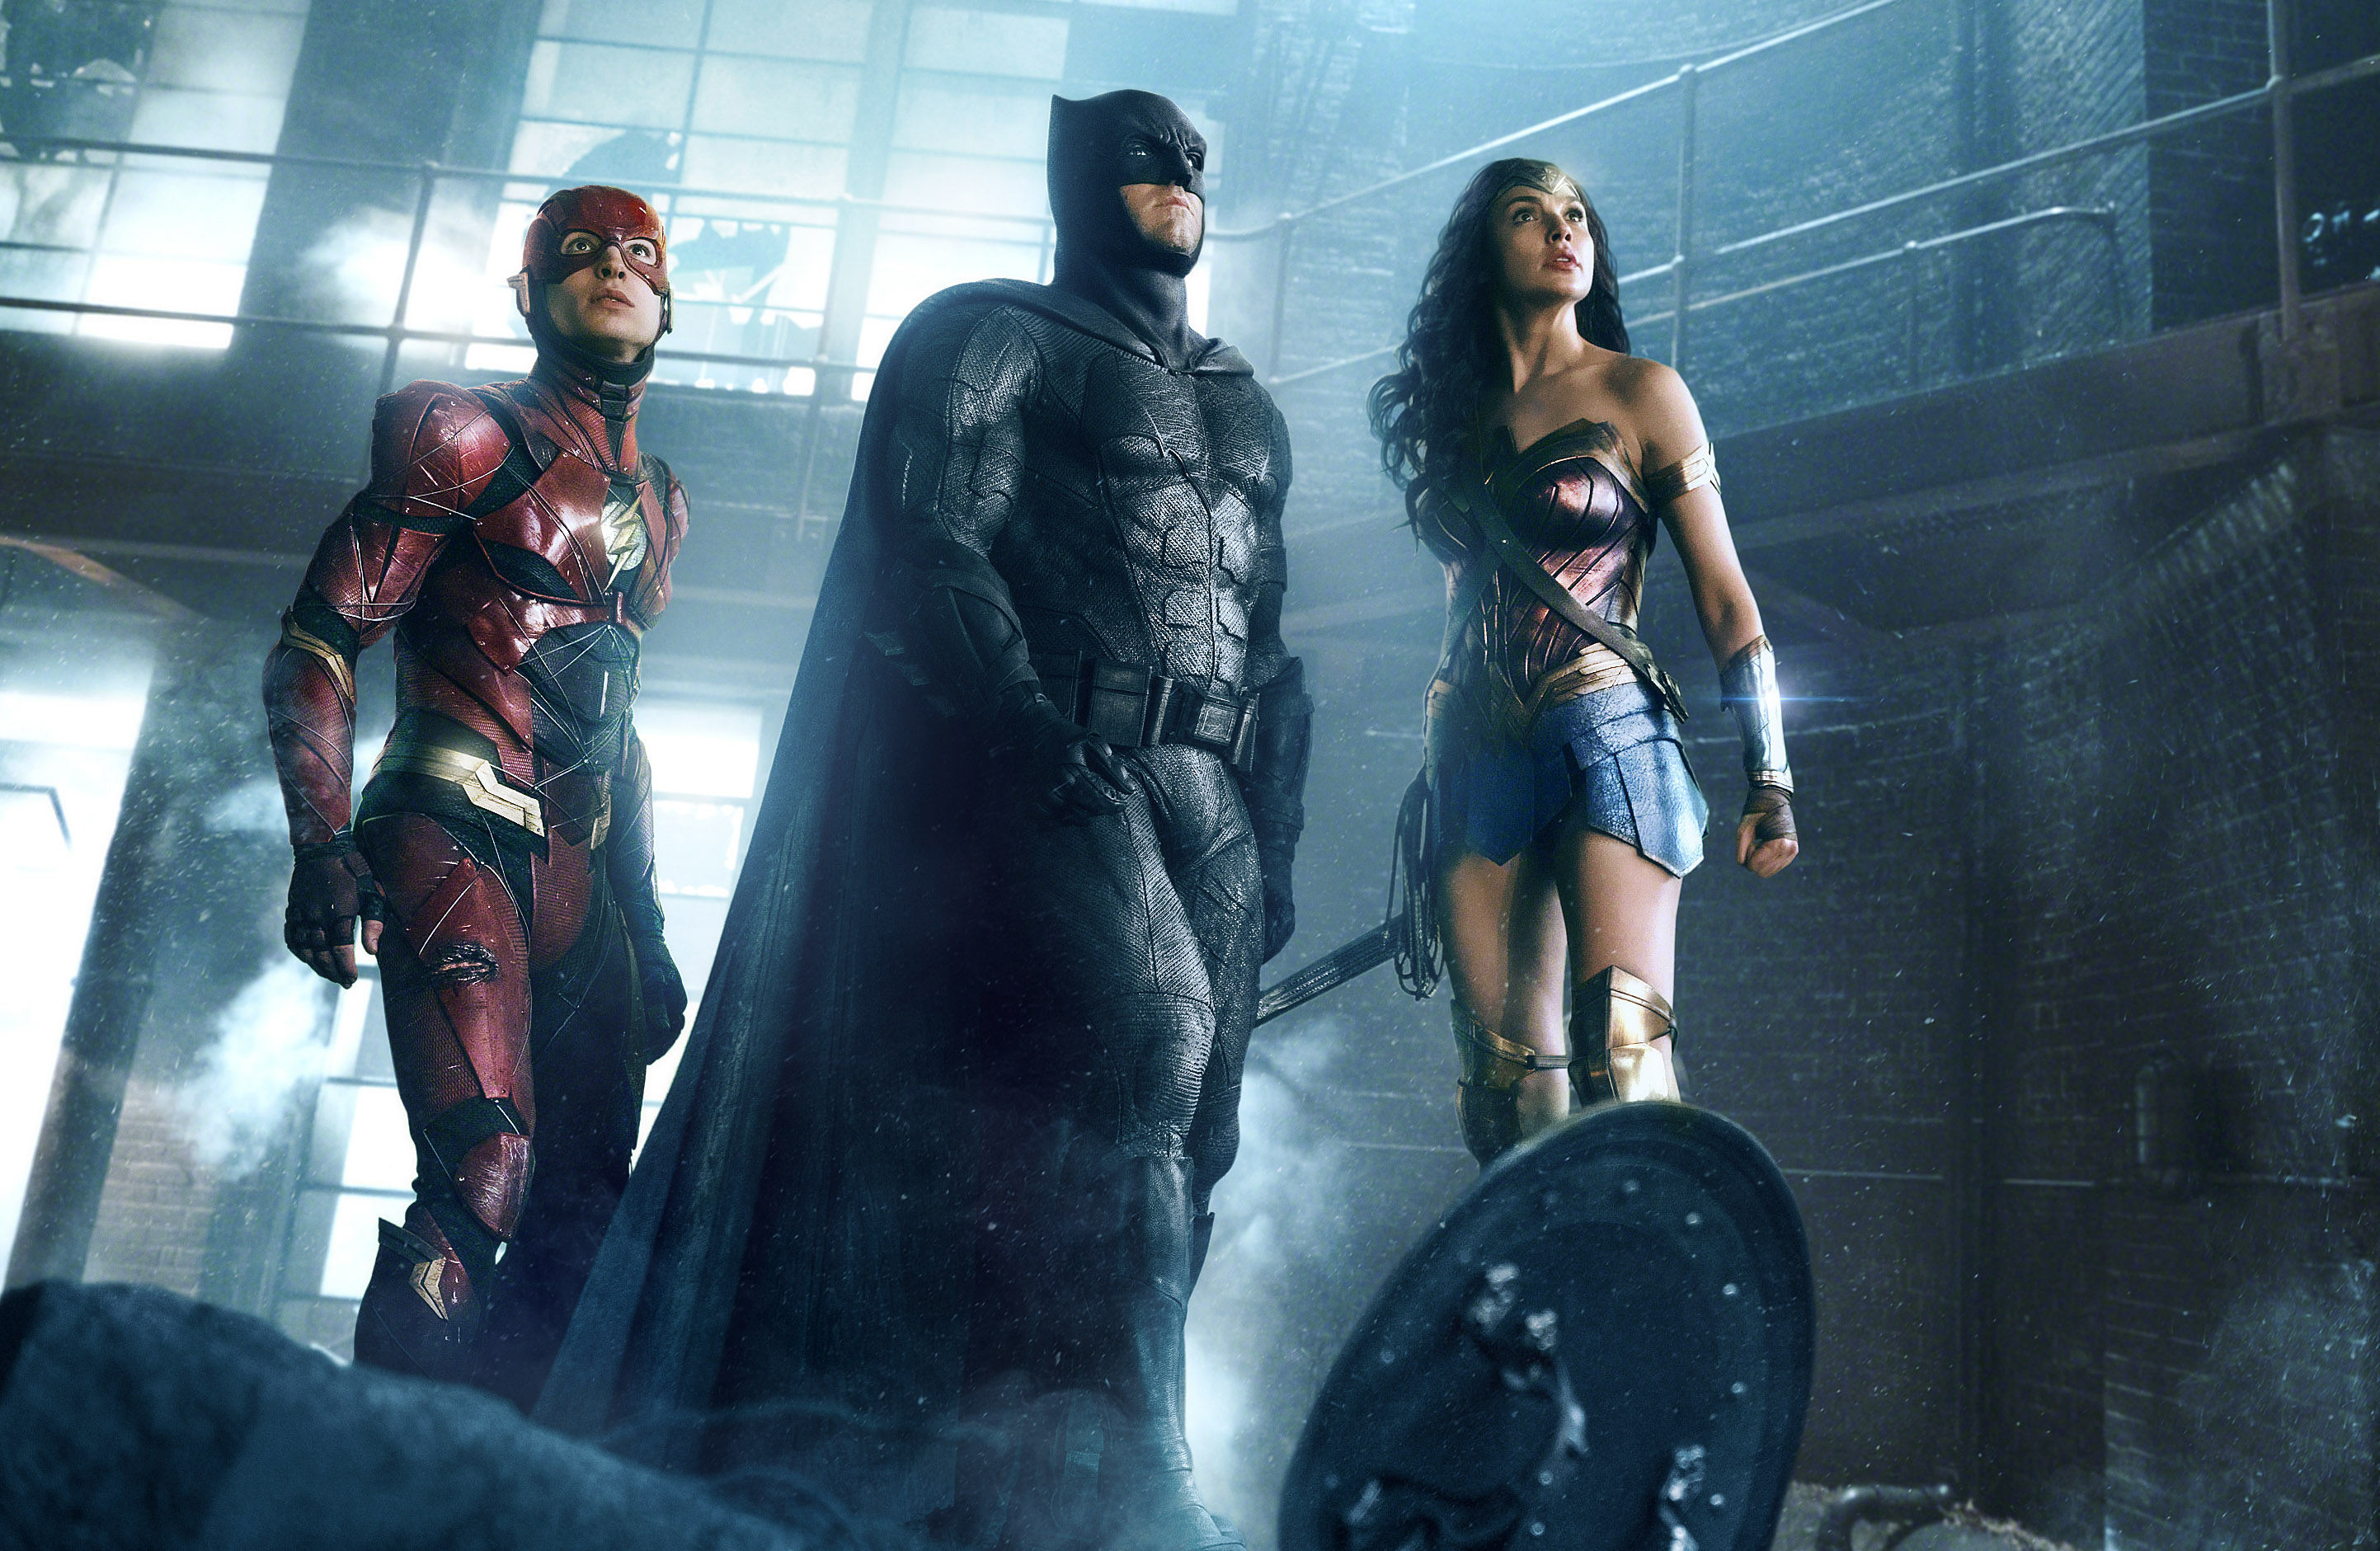 Justice League: extra filming set for early summer